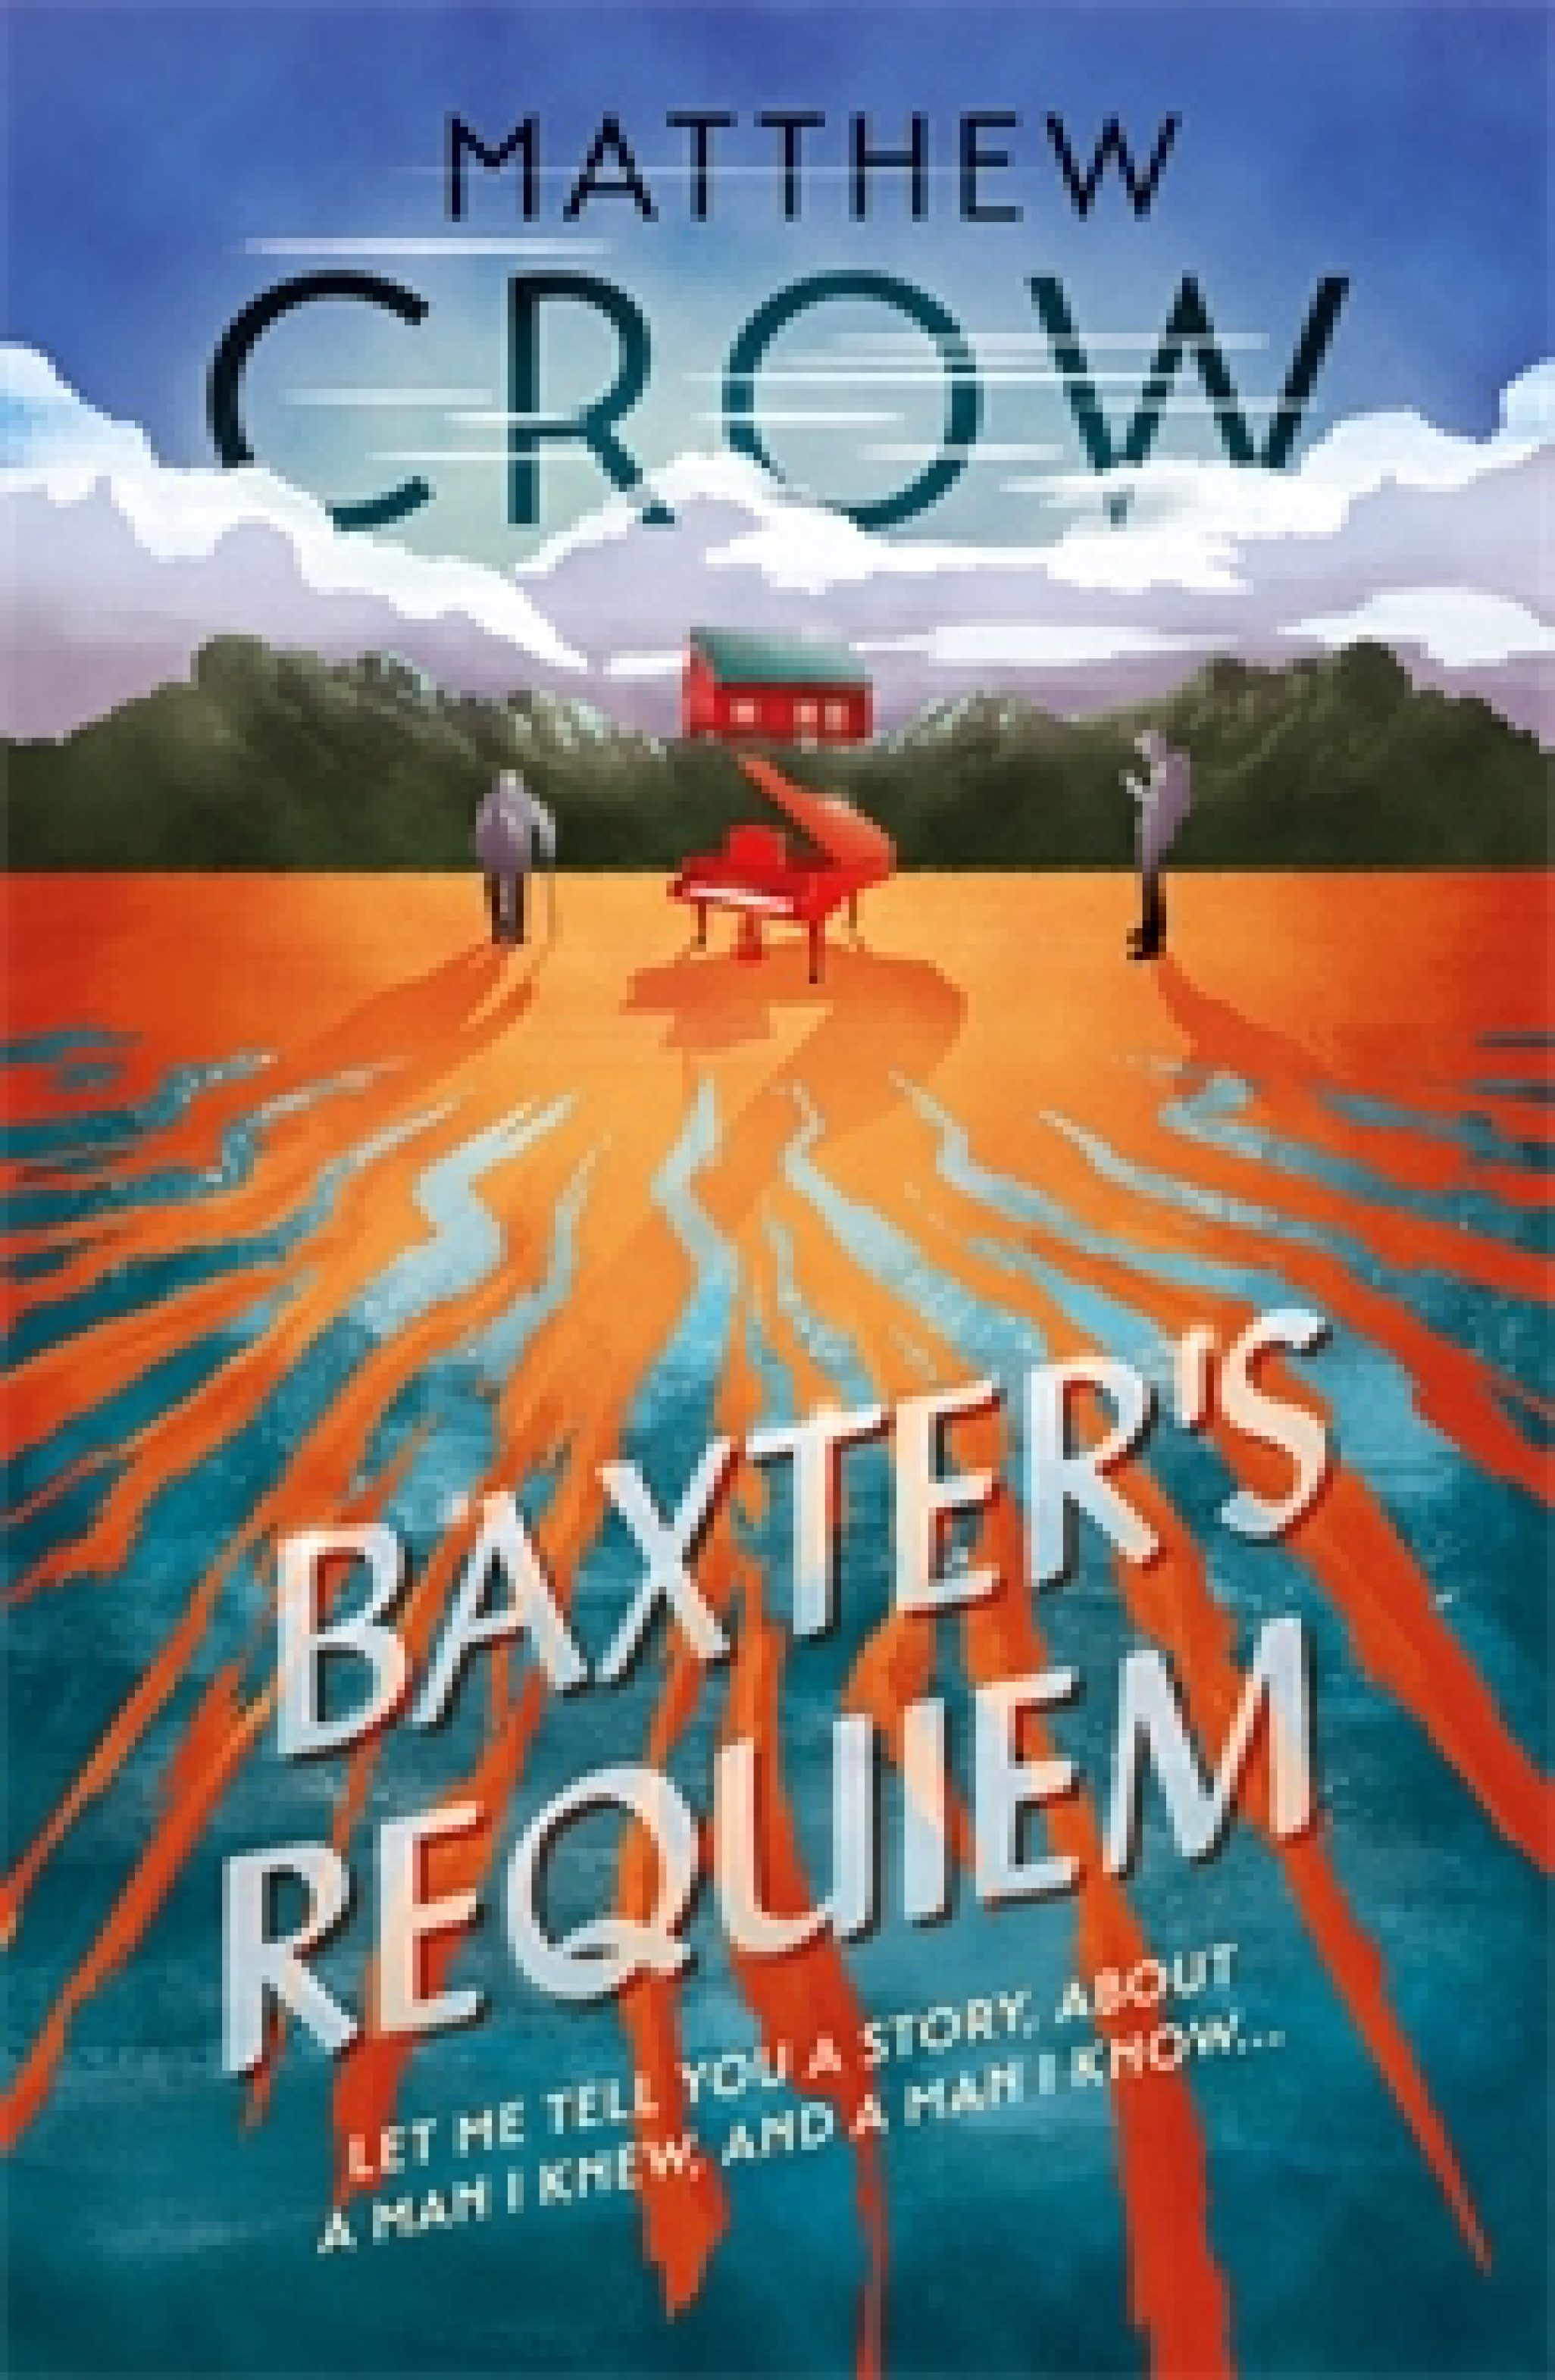 An Introduction to Baxter's Requiem by Matthew Crow